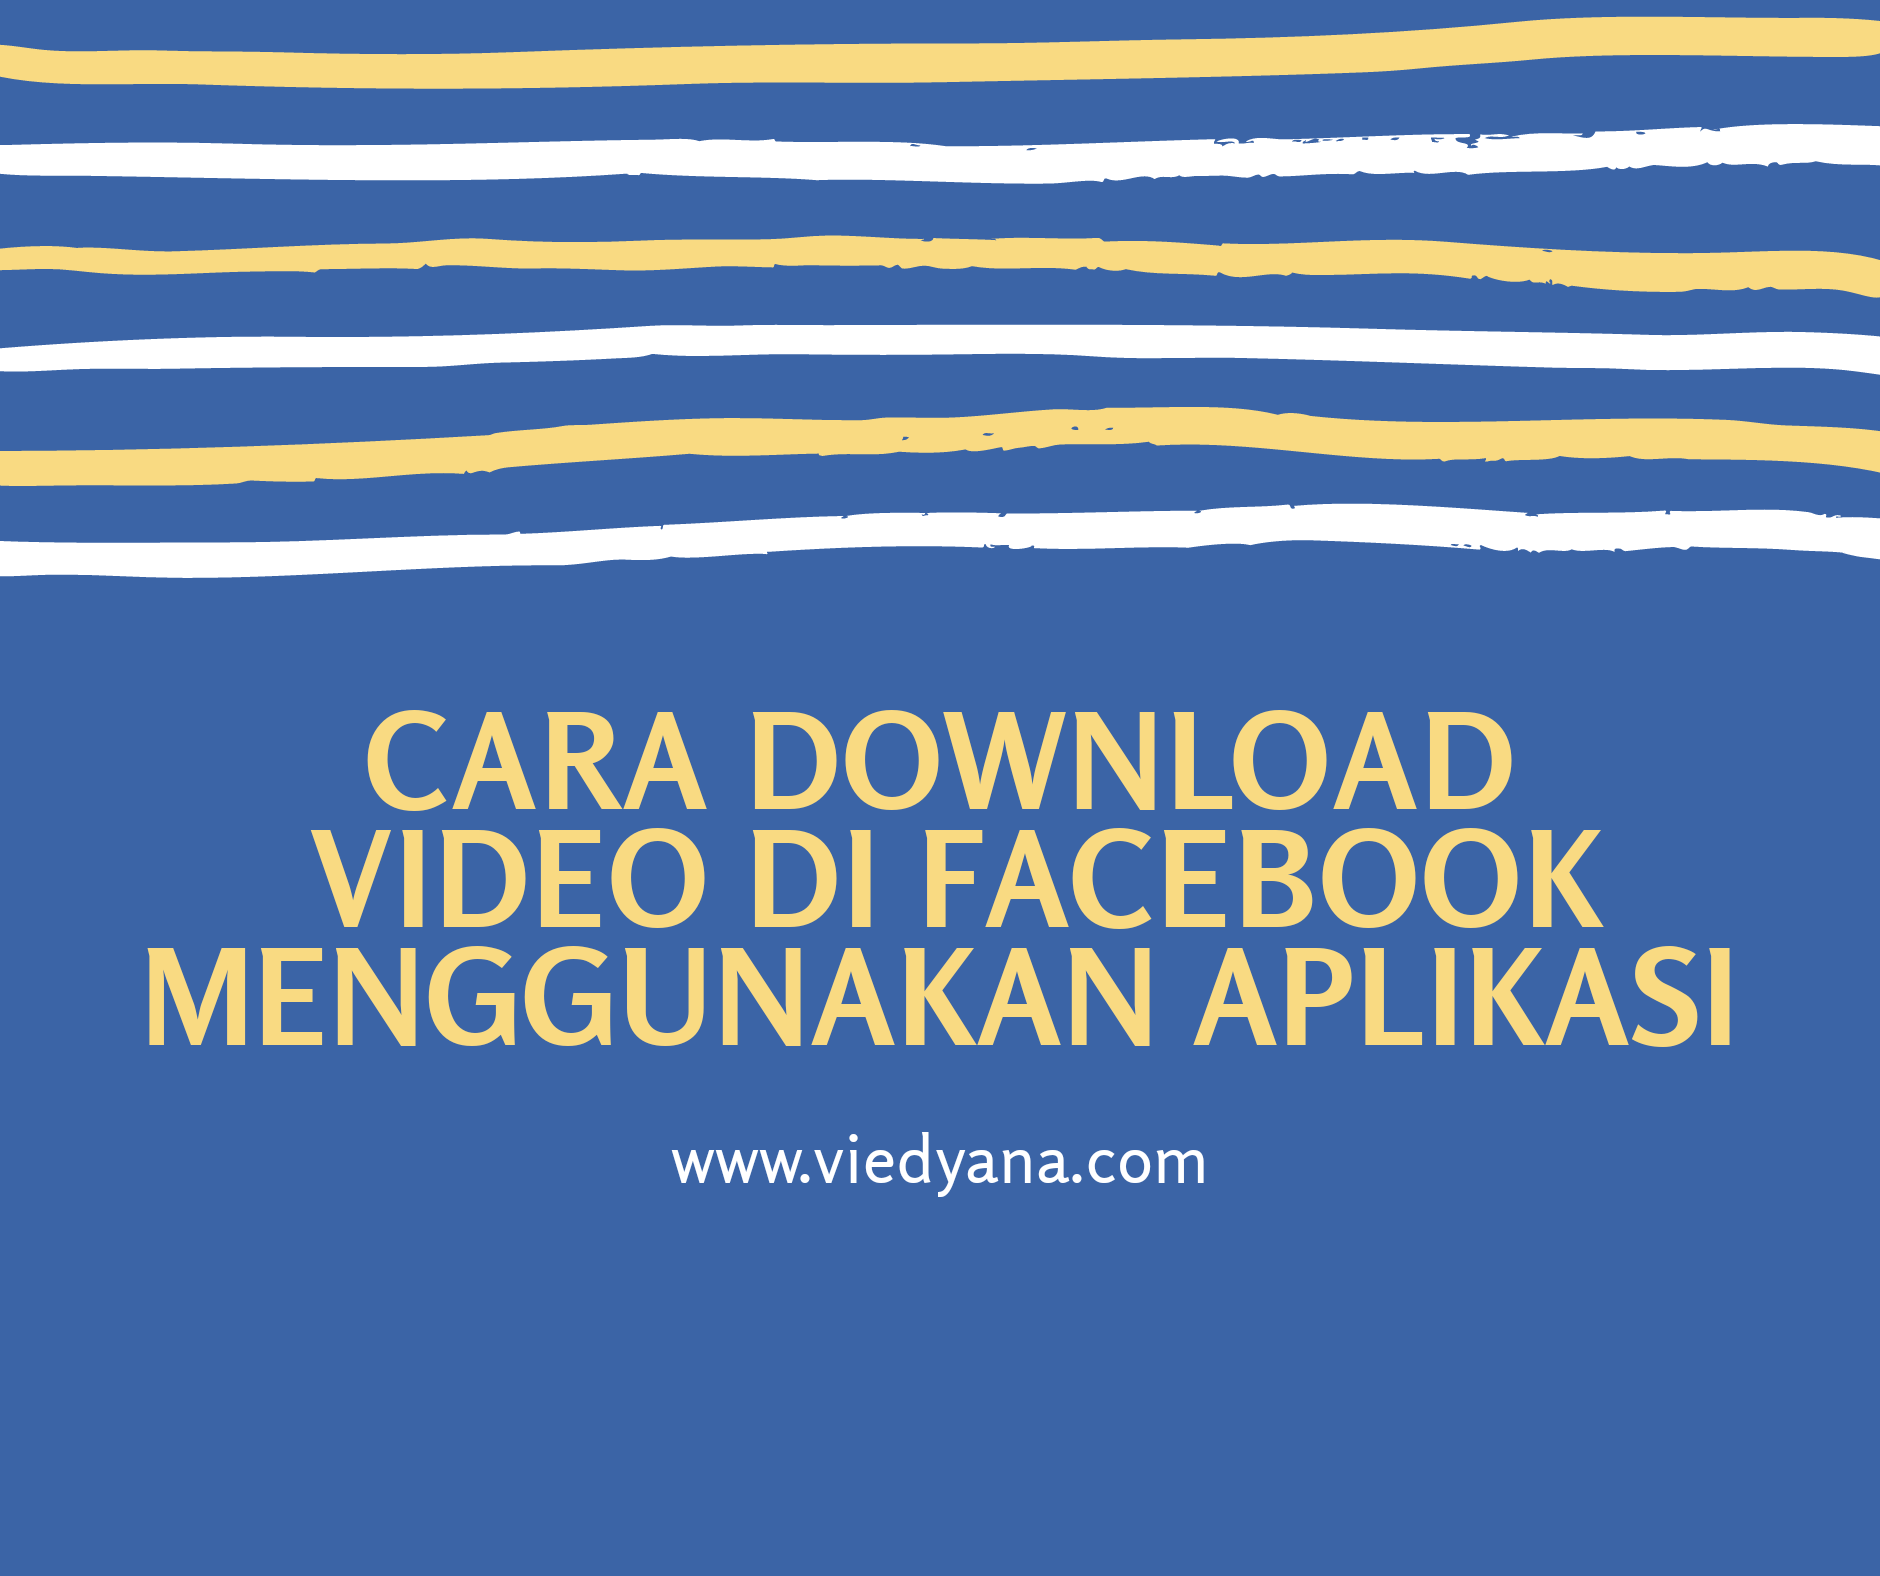 Cara Download Video di Facebook Menggunakan Aplikasi